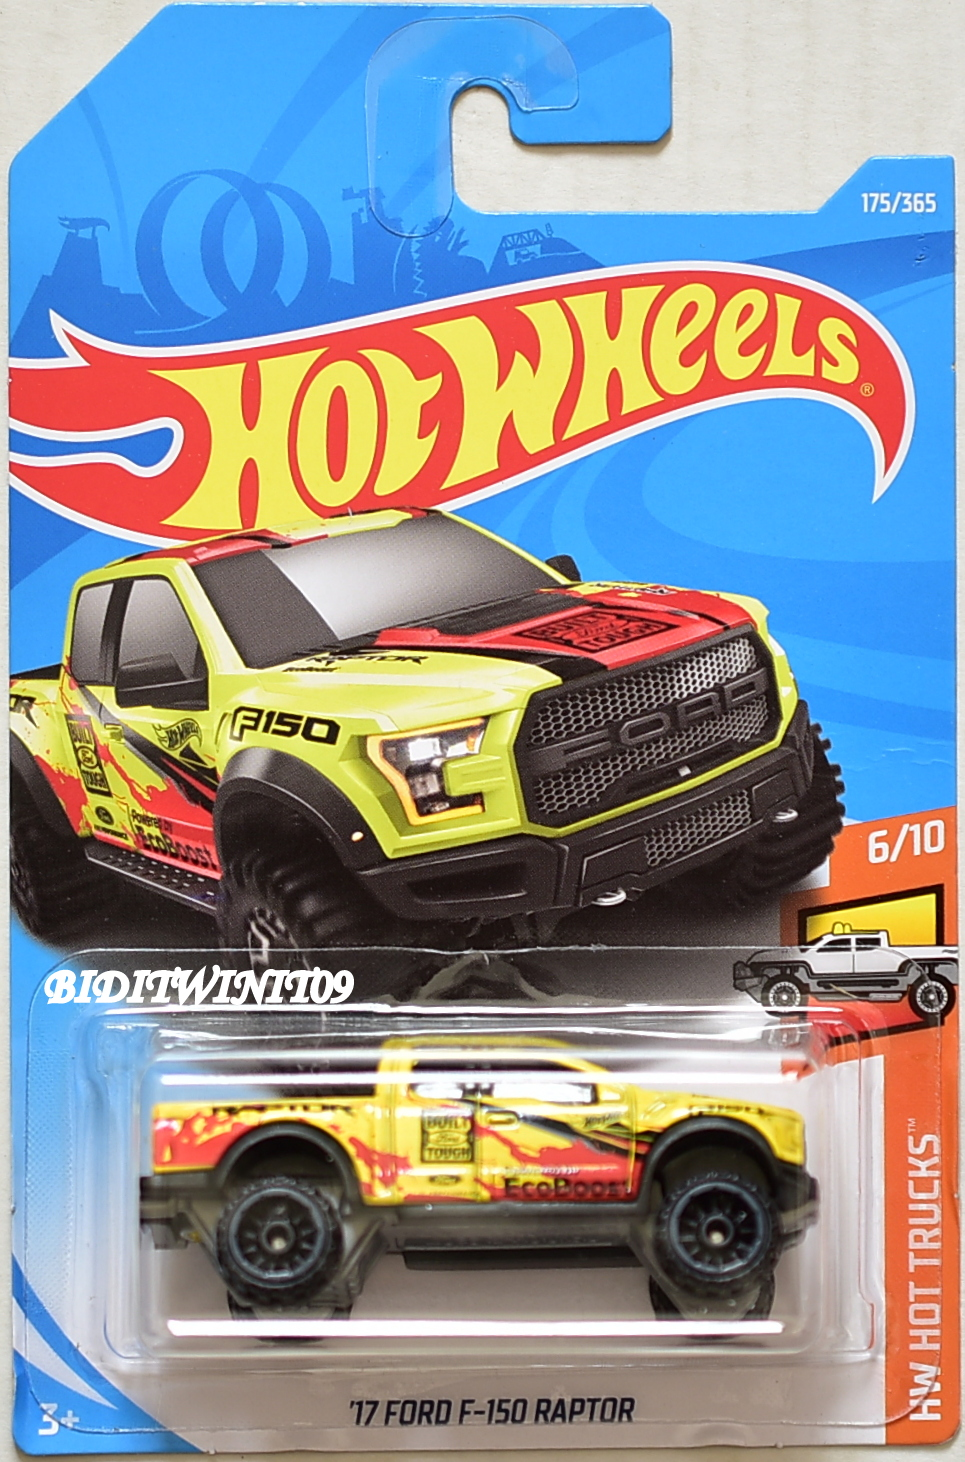 Hot wheels 2018 hw hot trucks 17 ford f 150 raptor 610 yellow hot wheels 2018 hw hot trucks 17 ford f 150 raptor 6 voltagebd Images